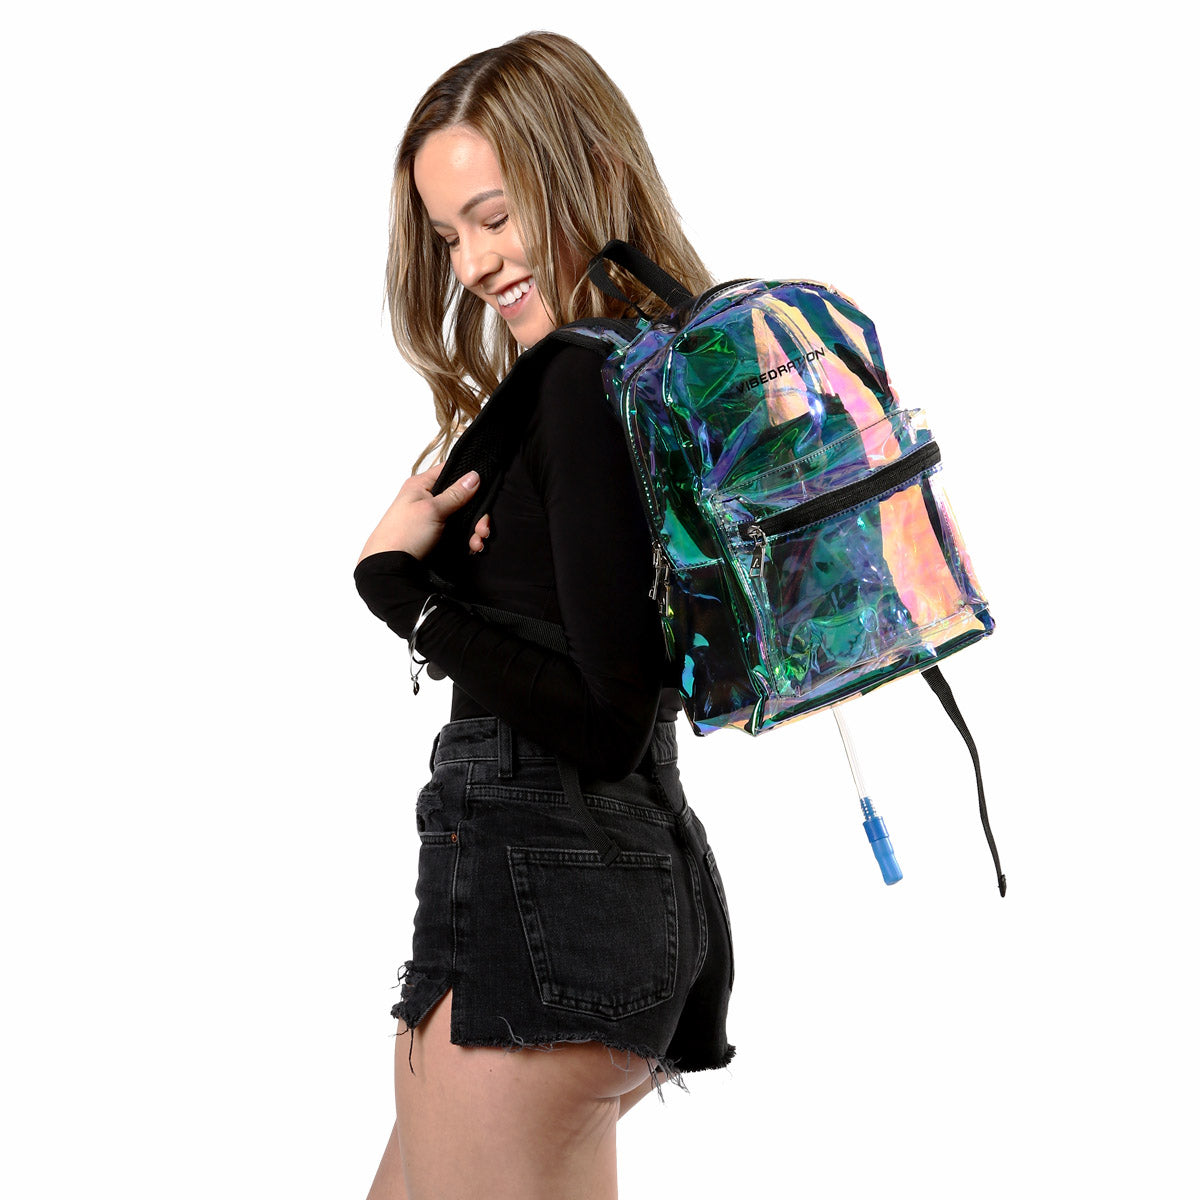 Girl wearing Iridescent Rave Backpack